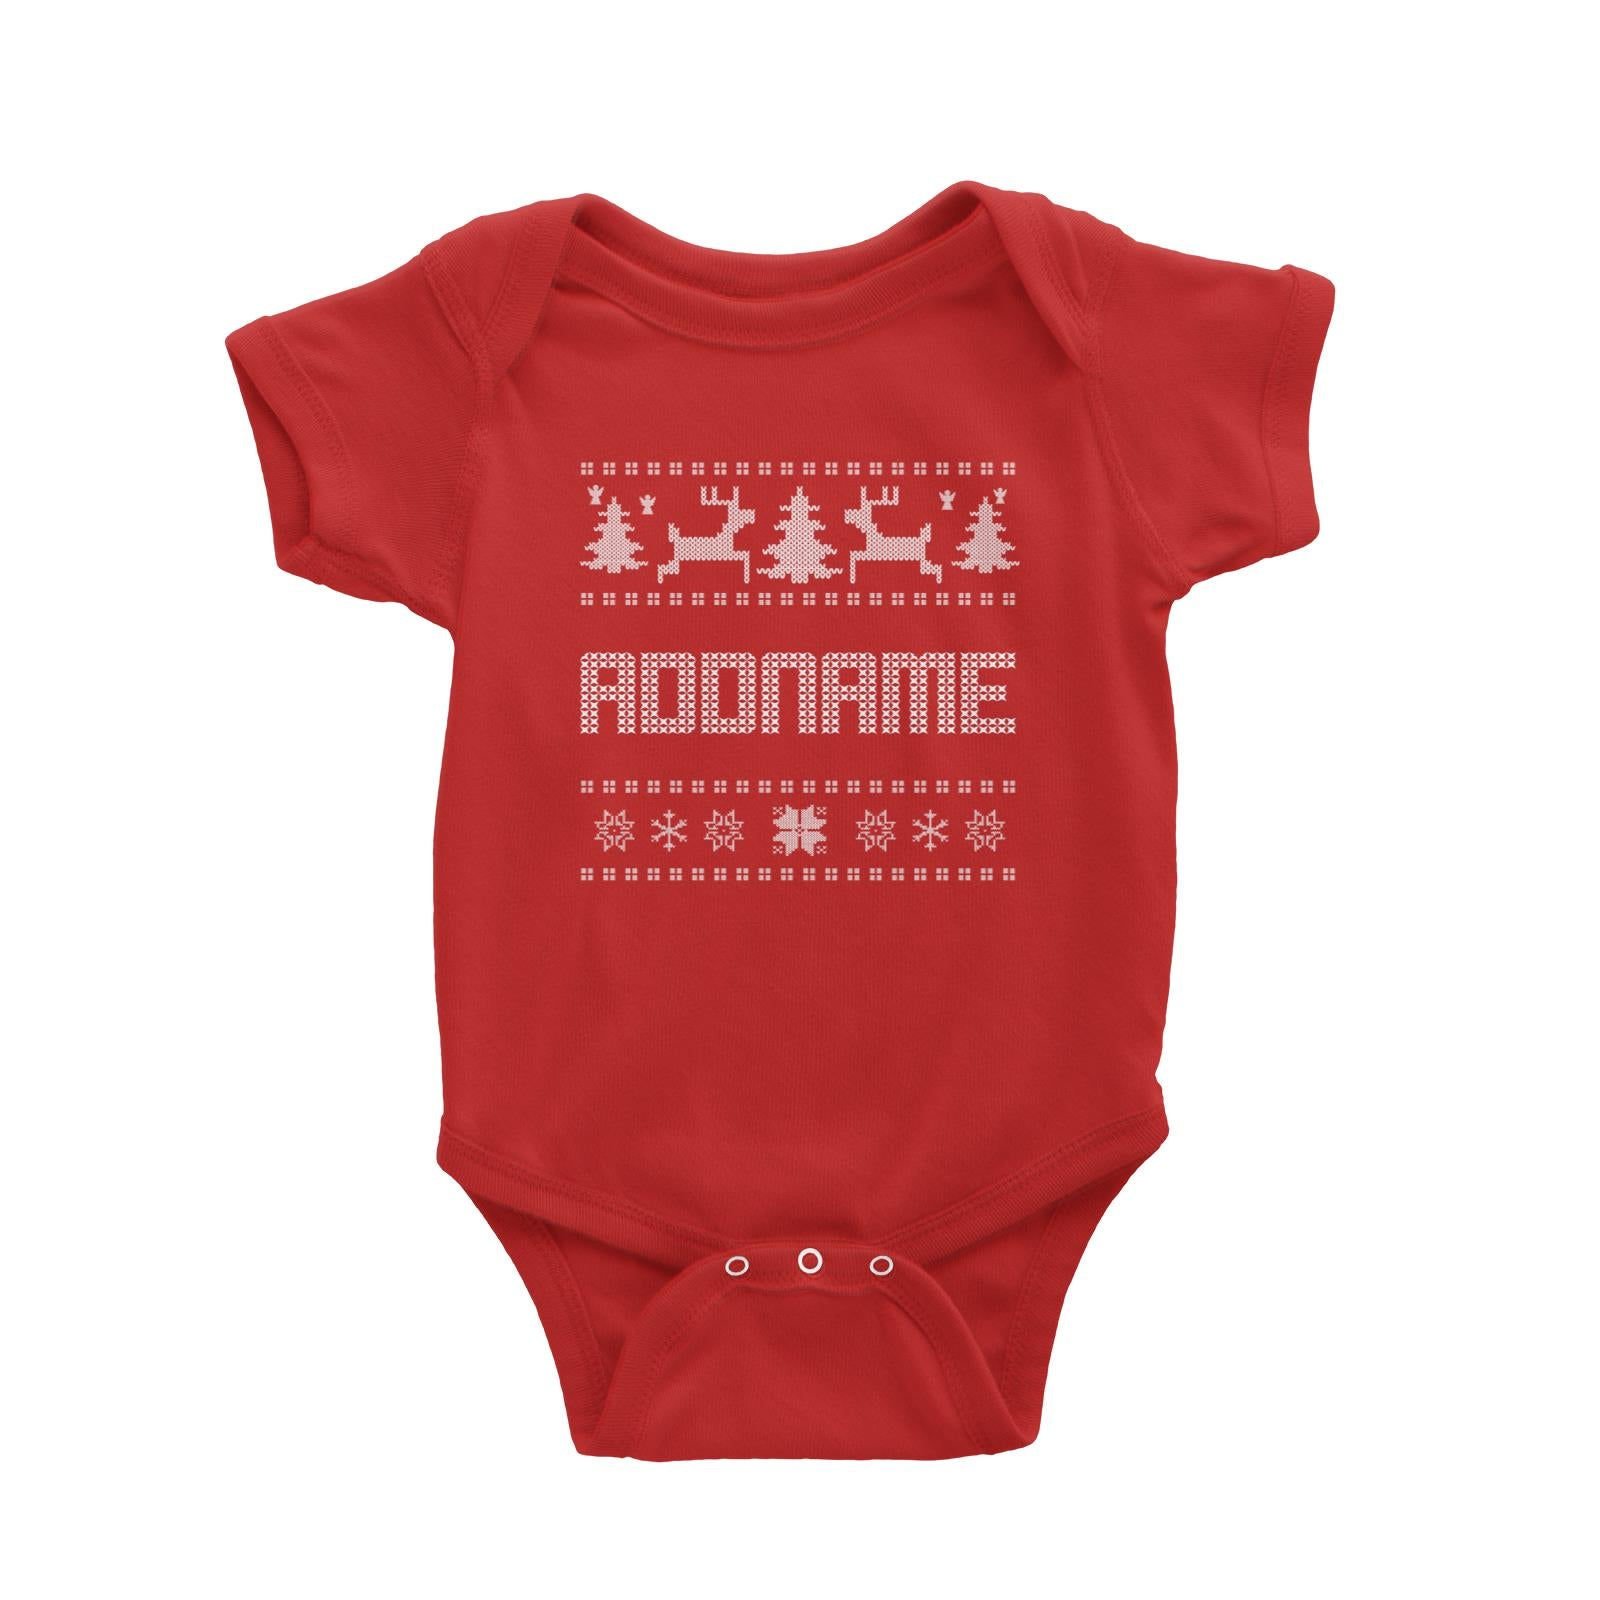 Christmas Sweater Addname Baby Romper  Matching Family Personalizable Designs